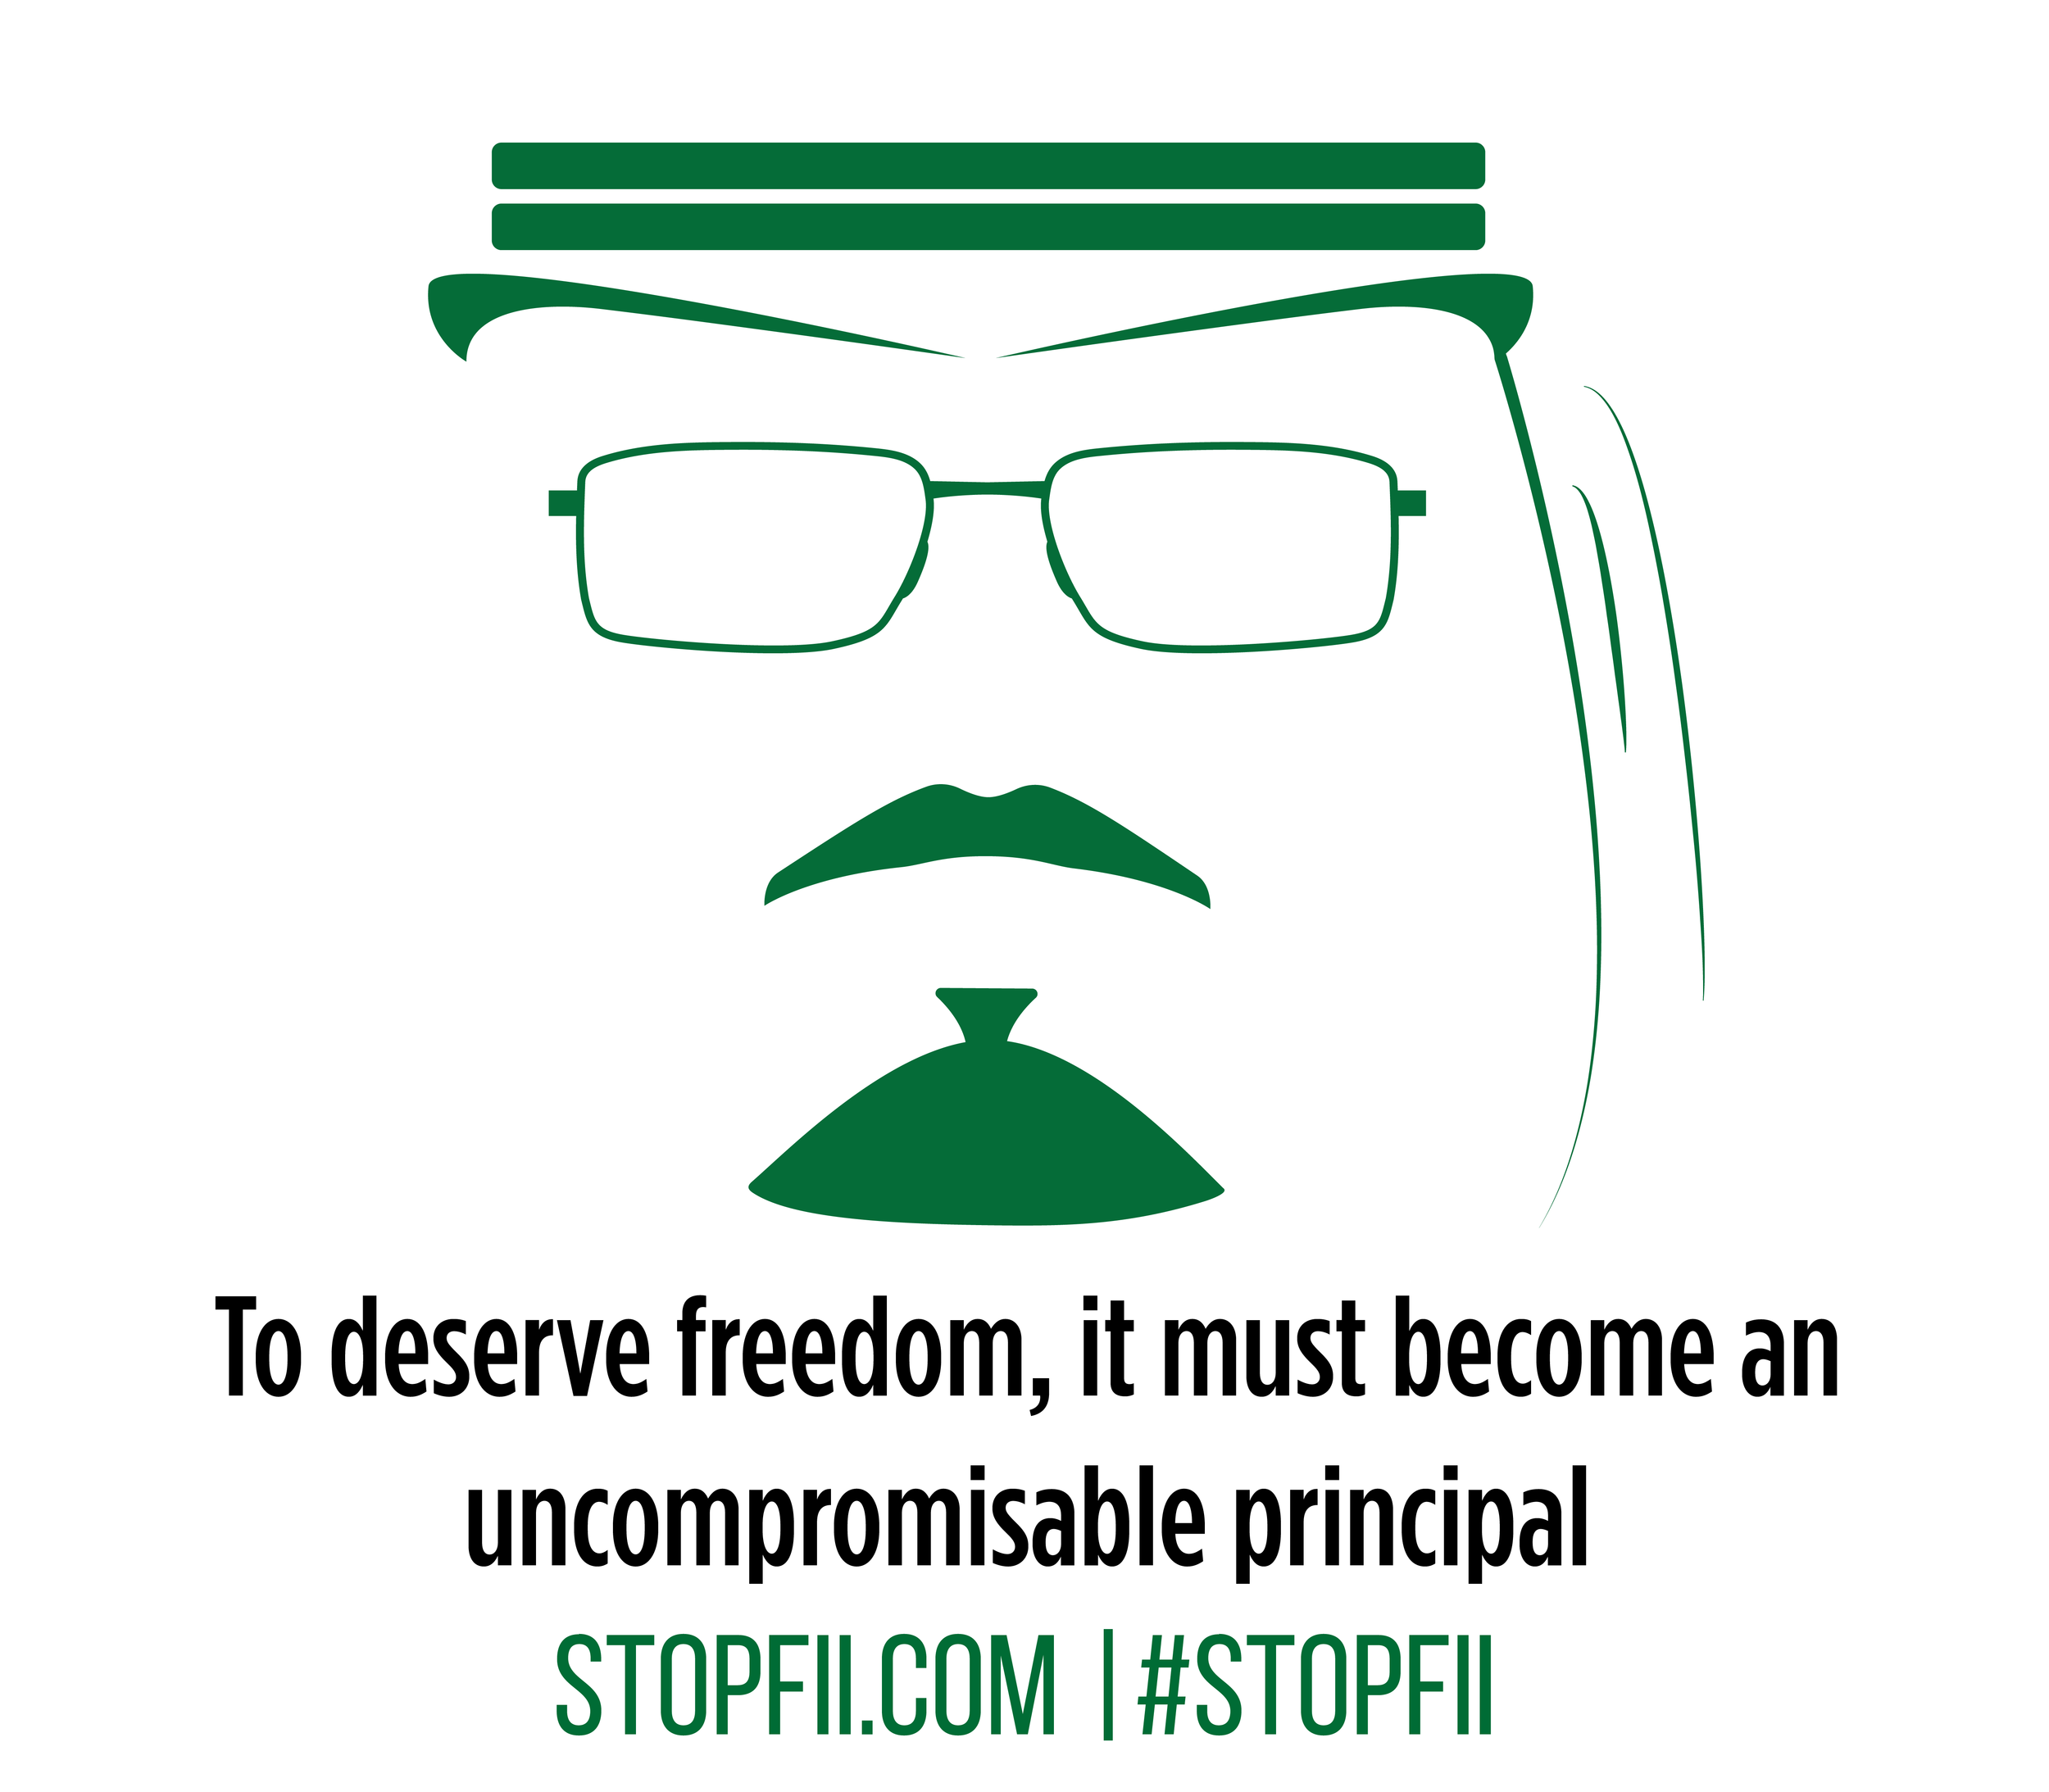 To deserve freedom, it must become an uncompromisable principal